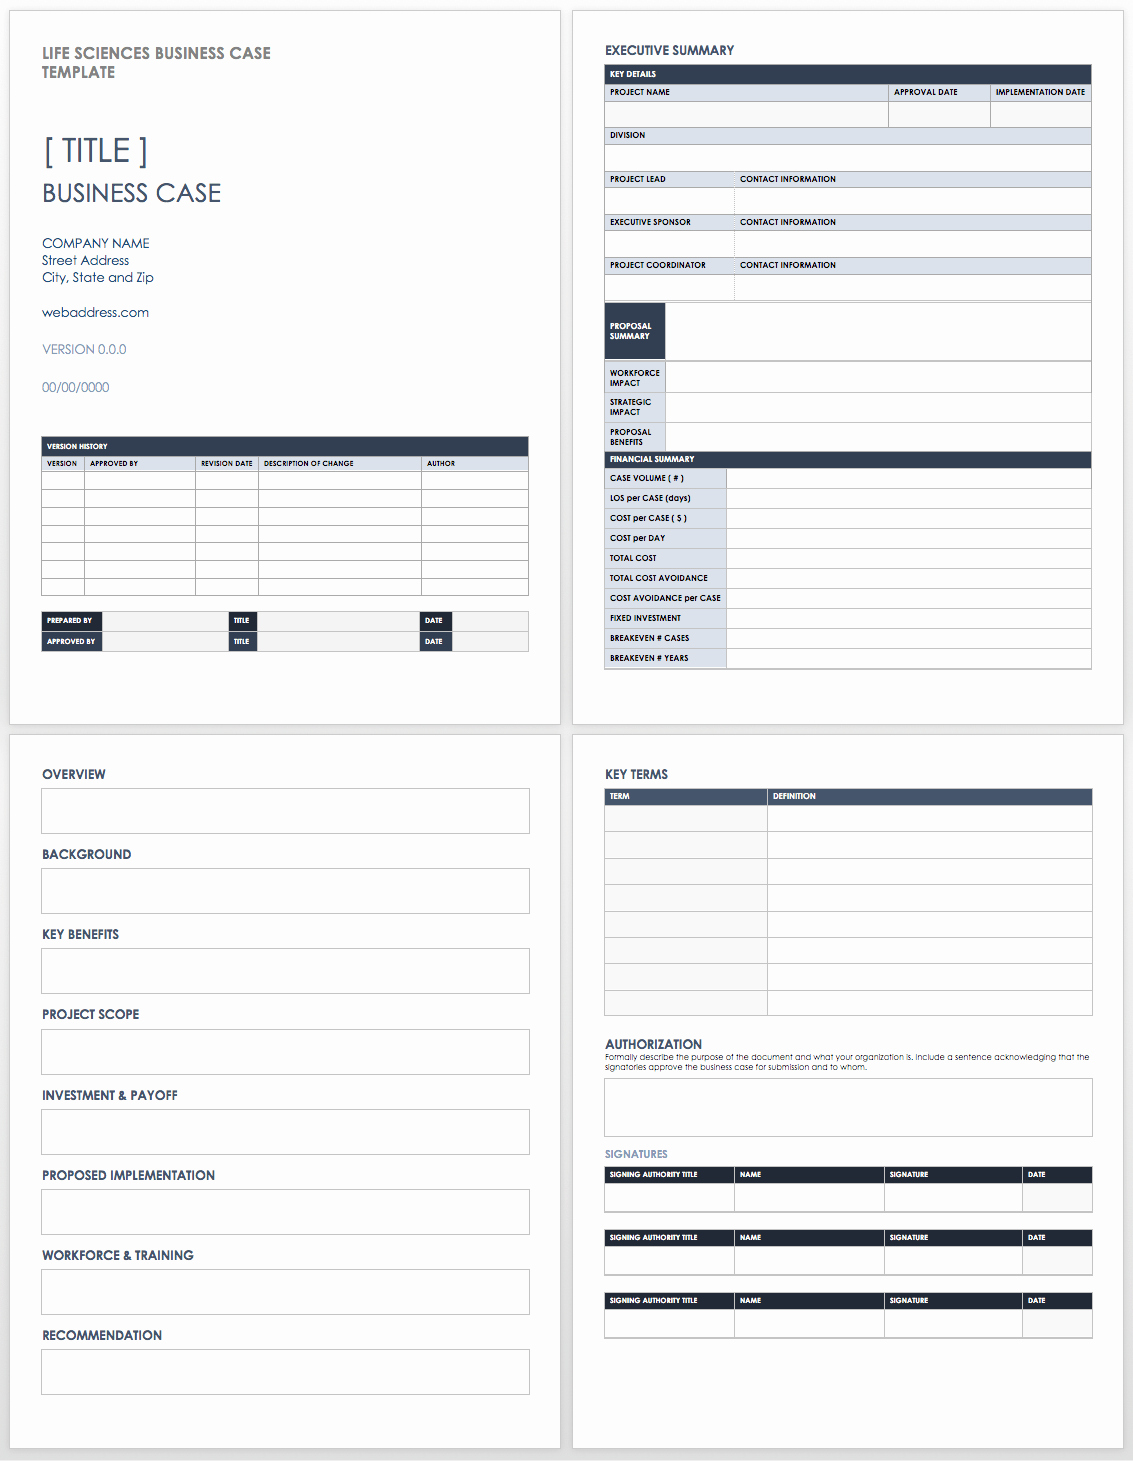 Business Case Template Word Luxury Free Business Case Templates